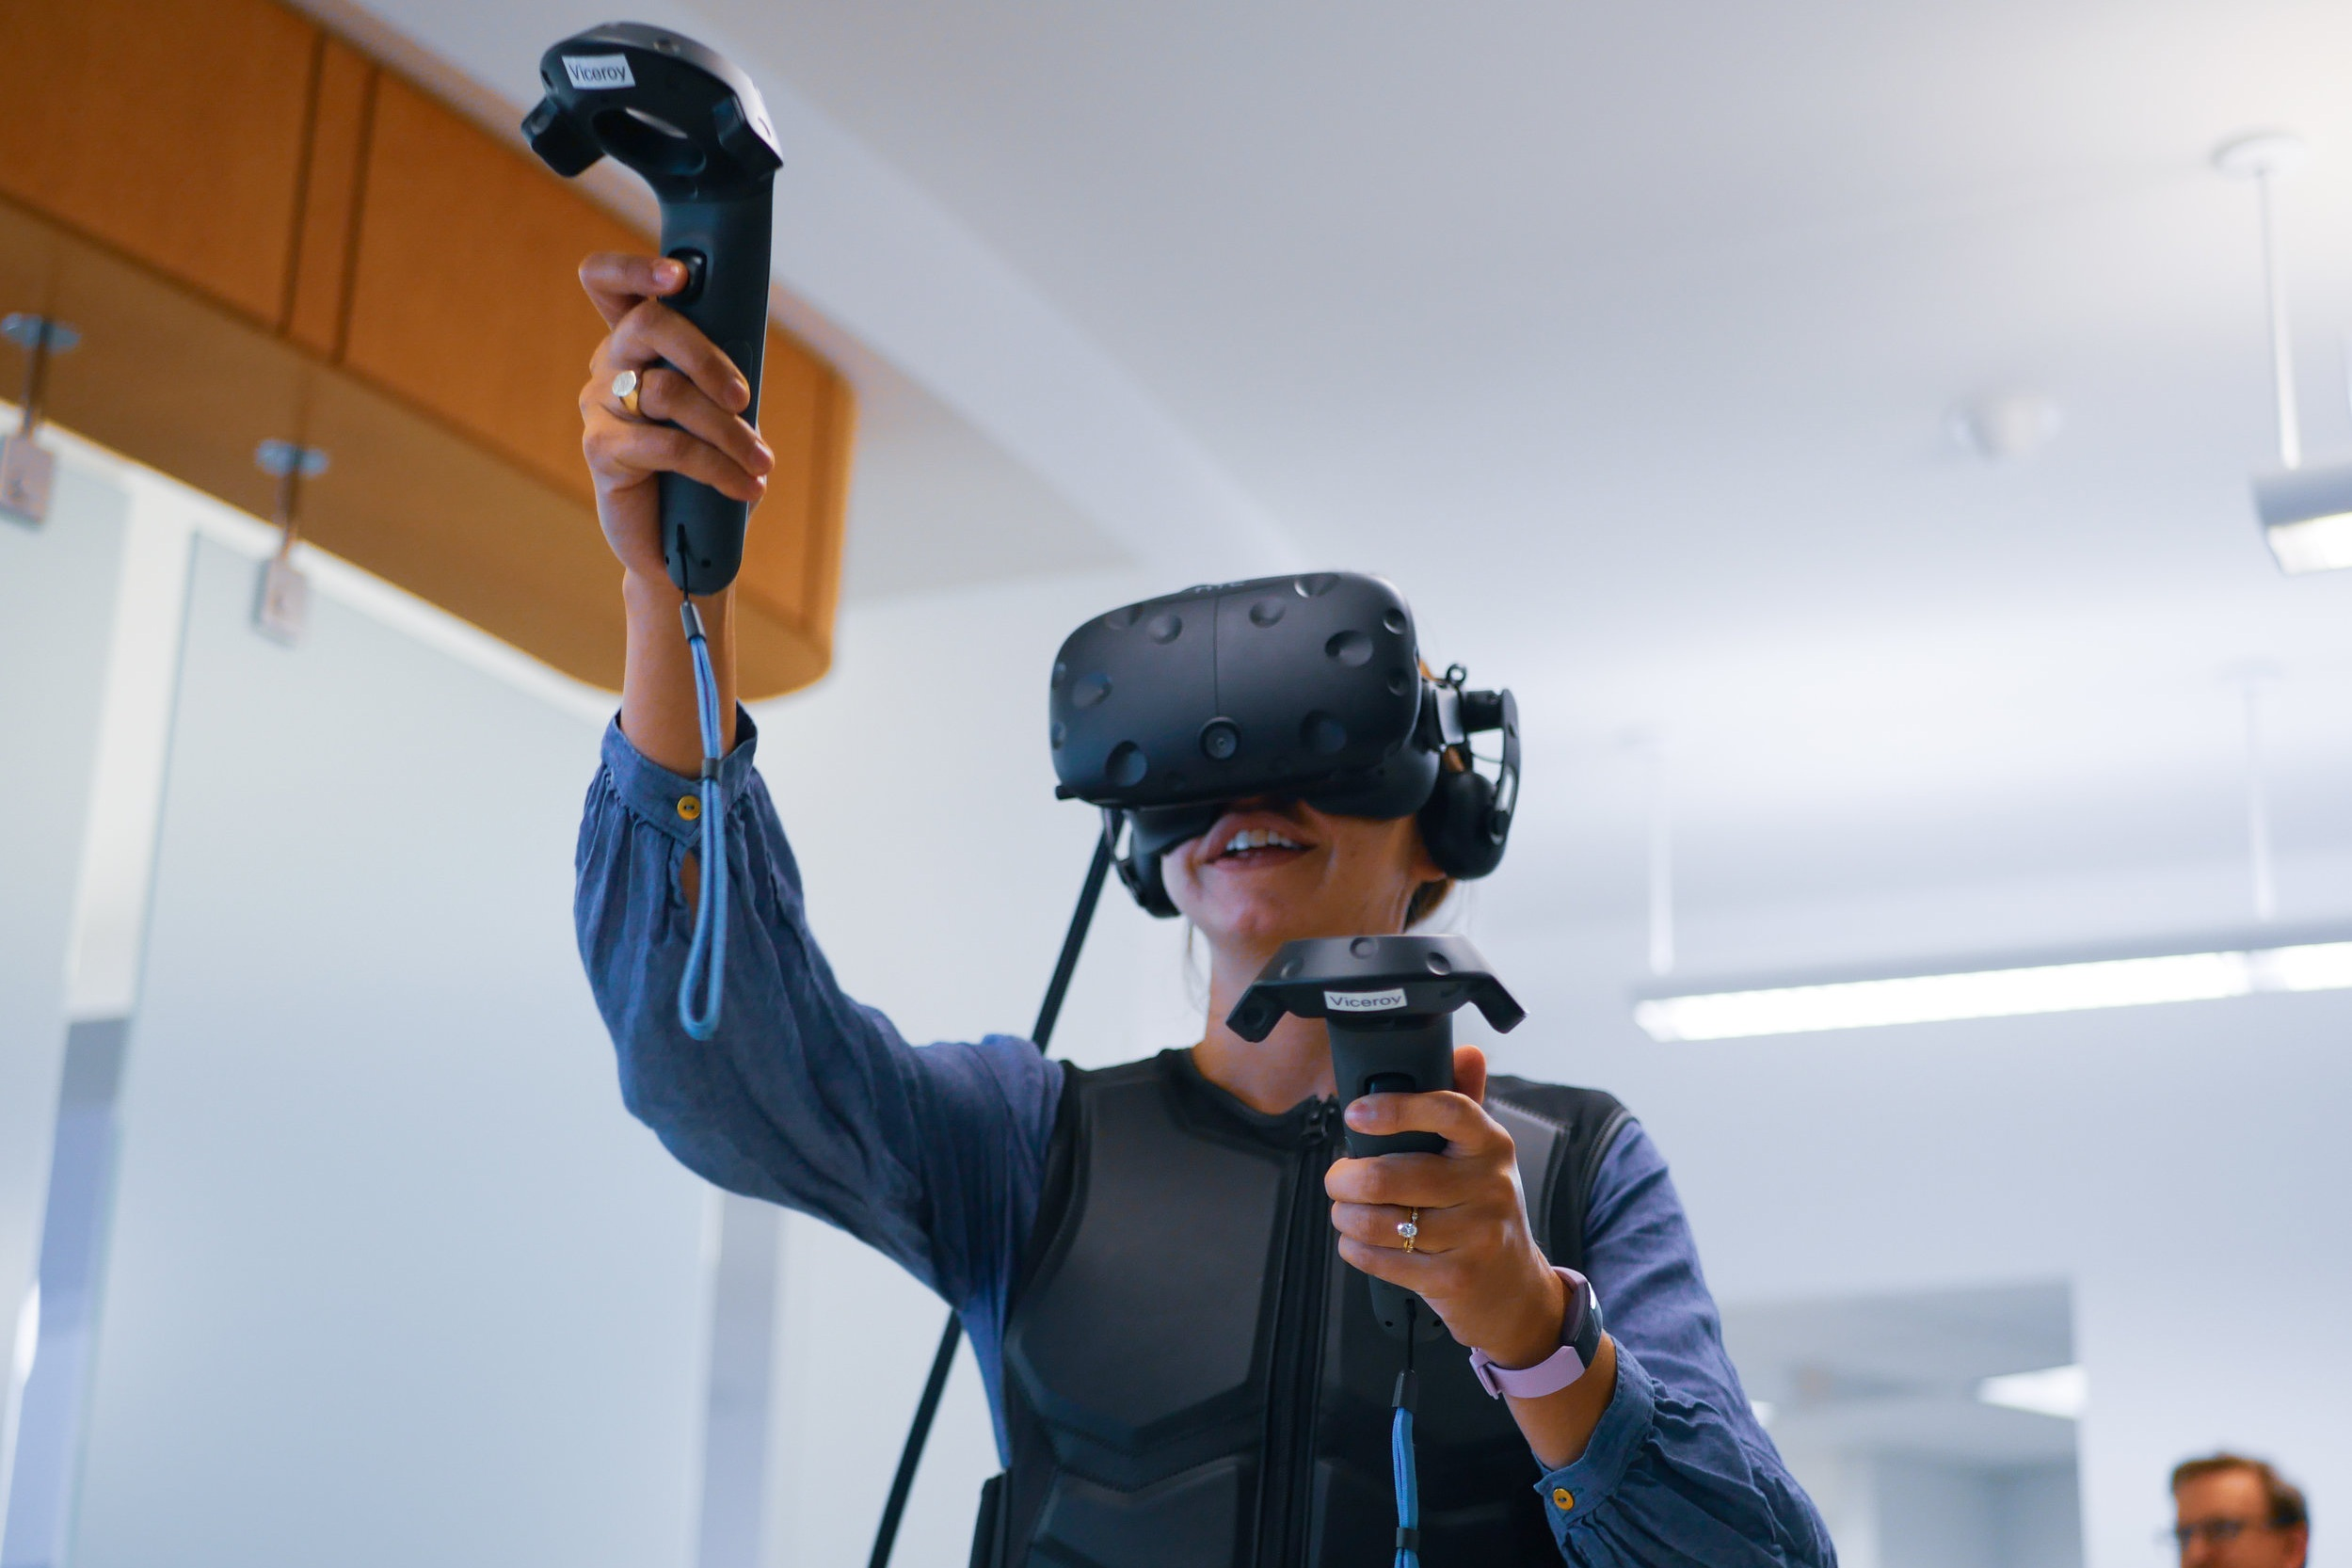 - All VR/AR initiatives are meticulously measured to validate program effectiveness and guide continuous improvement.